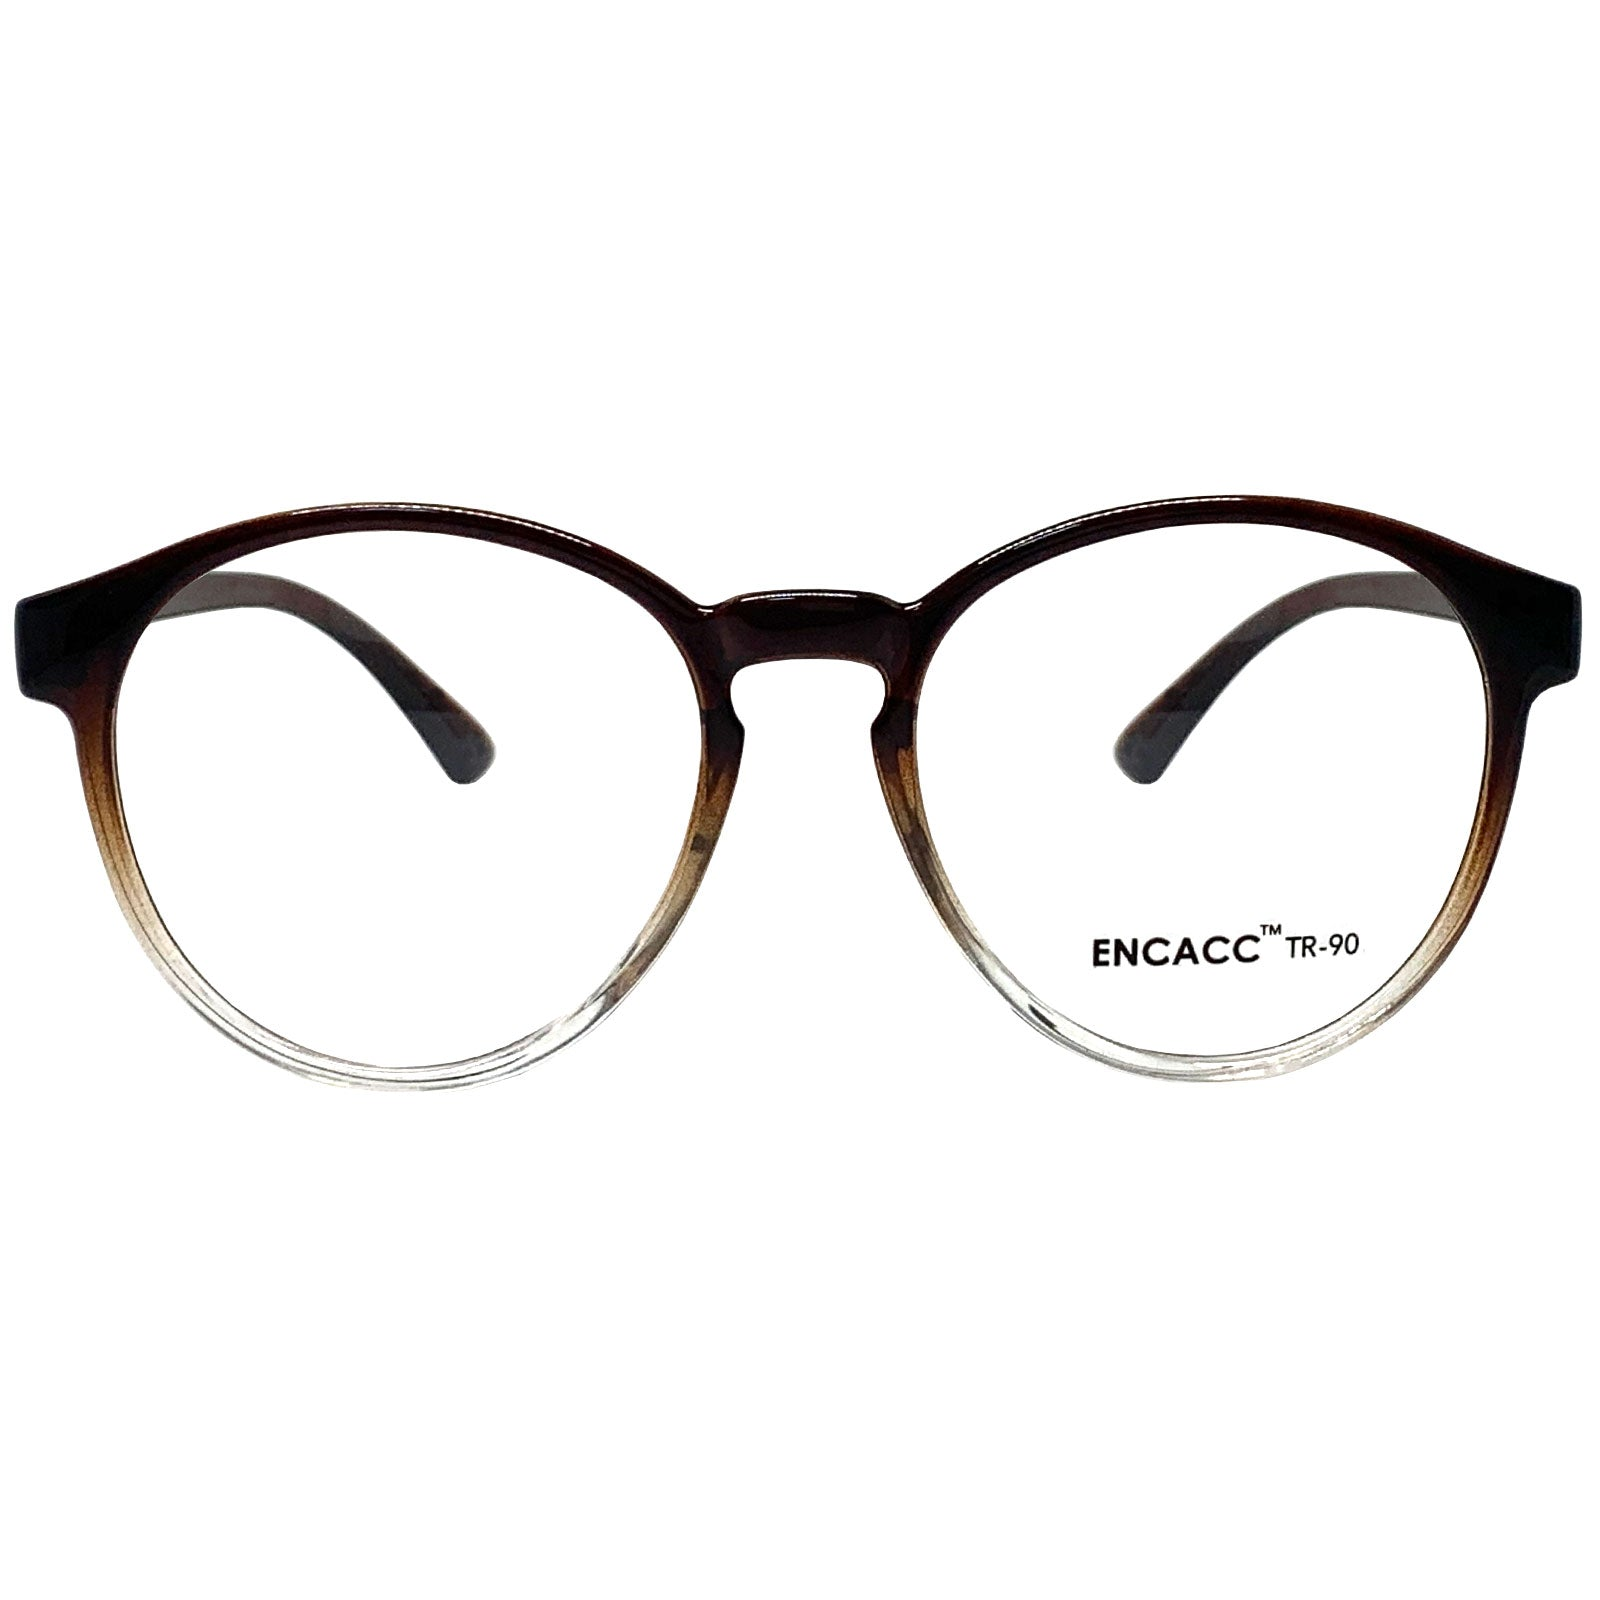 Oversize Big Round Eye Glasses Horn Rimmed Eye wear Frame TR90 Non Prescription